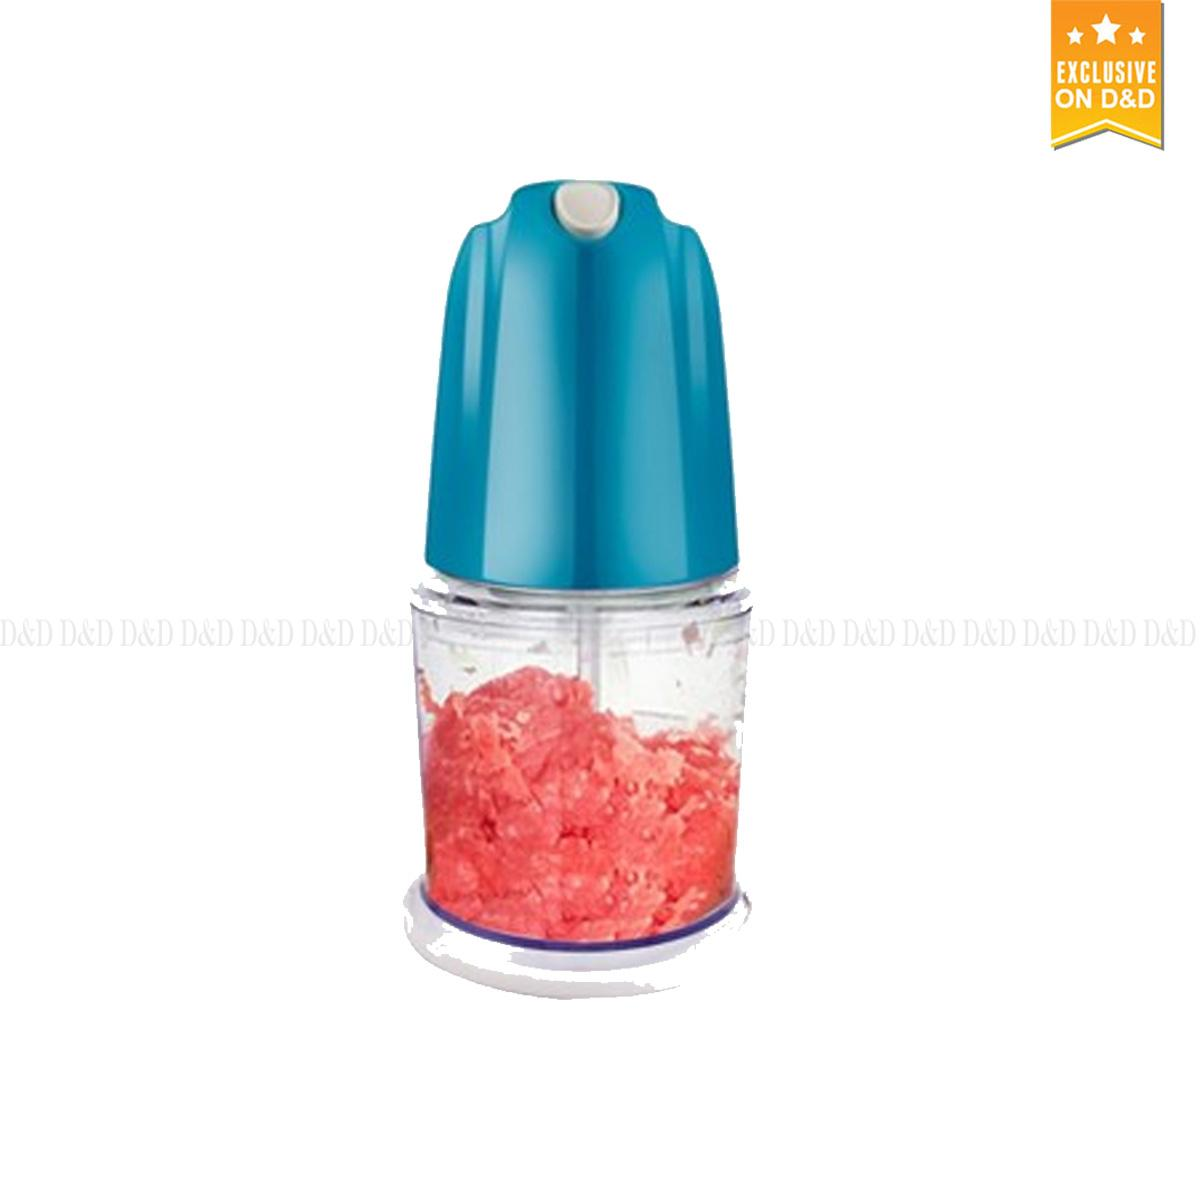 Small Food Processor for sale - Food Processor prices, brands ...